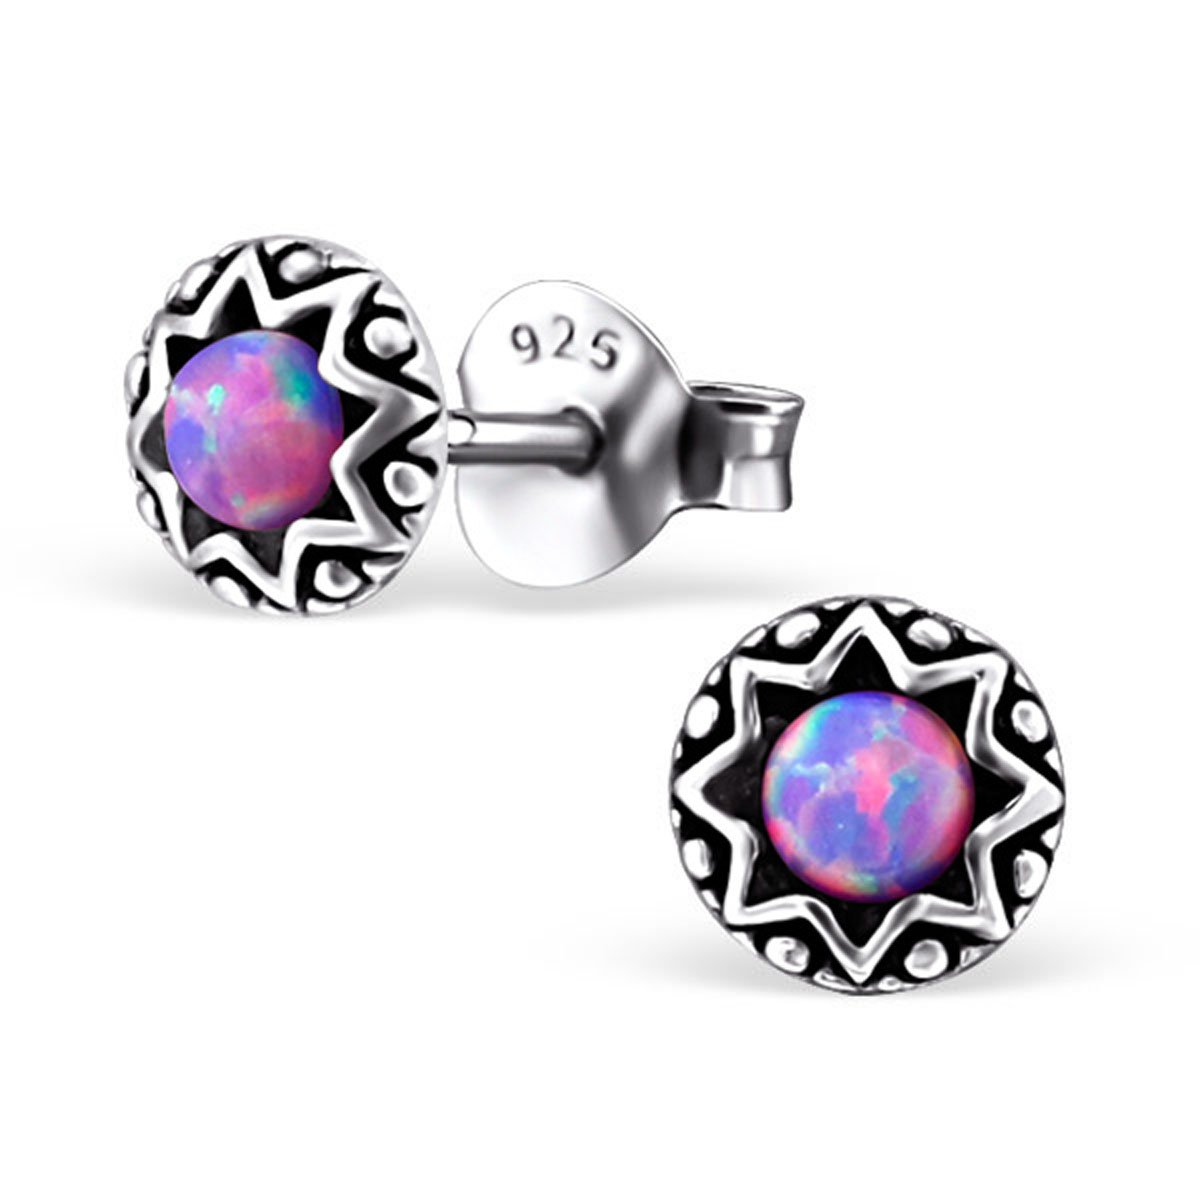 Tiny Round Star Lab Created Opal Silver Earrings Vintage Antique Style Stering Silver 925 Post Studs (E23673) (Multi Lavender)